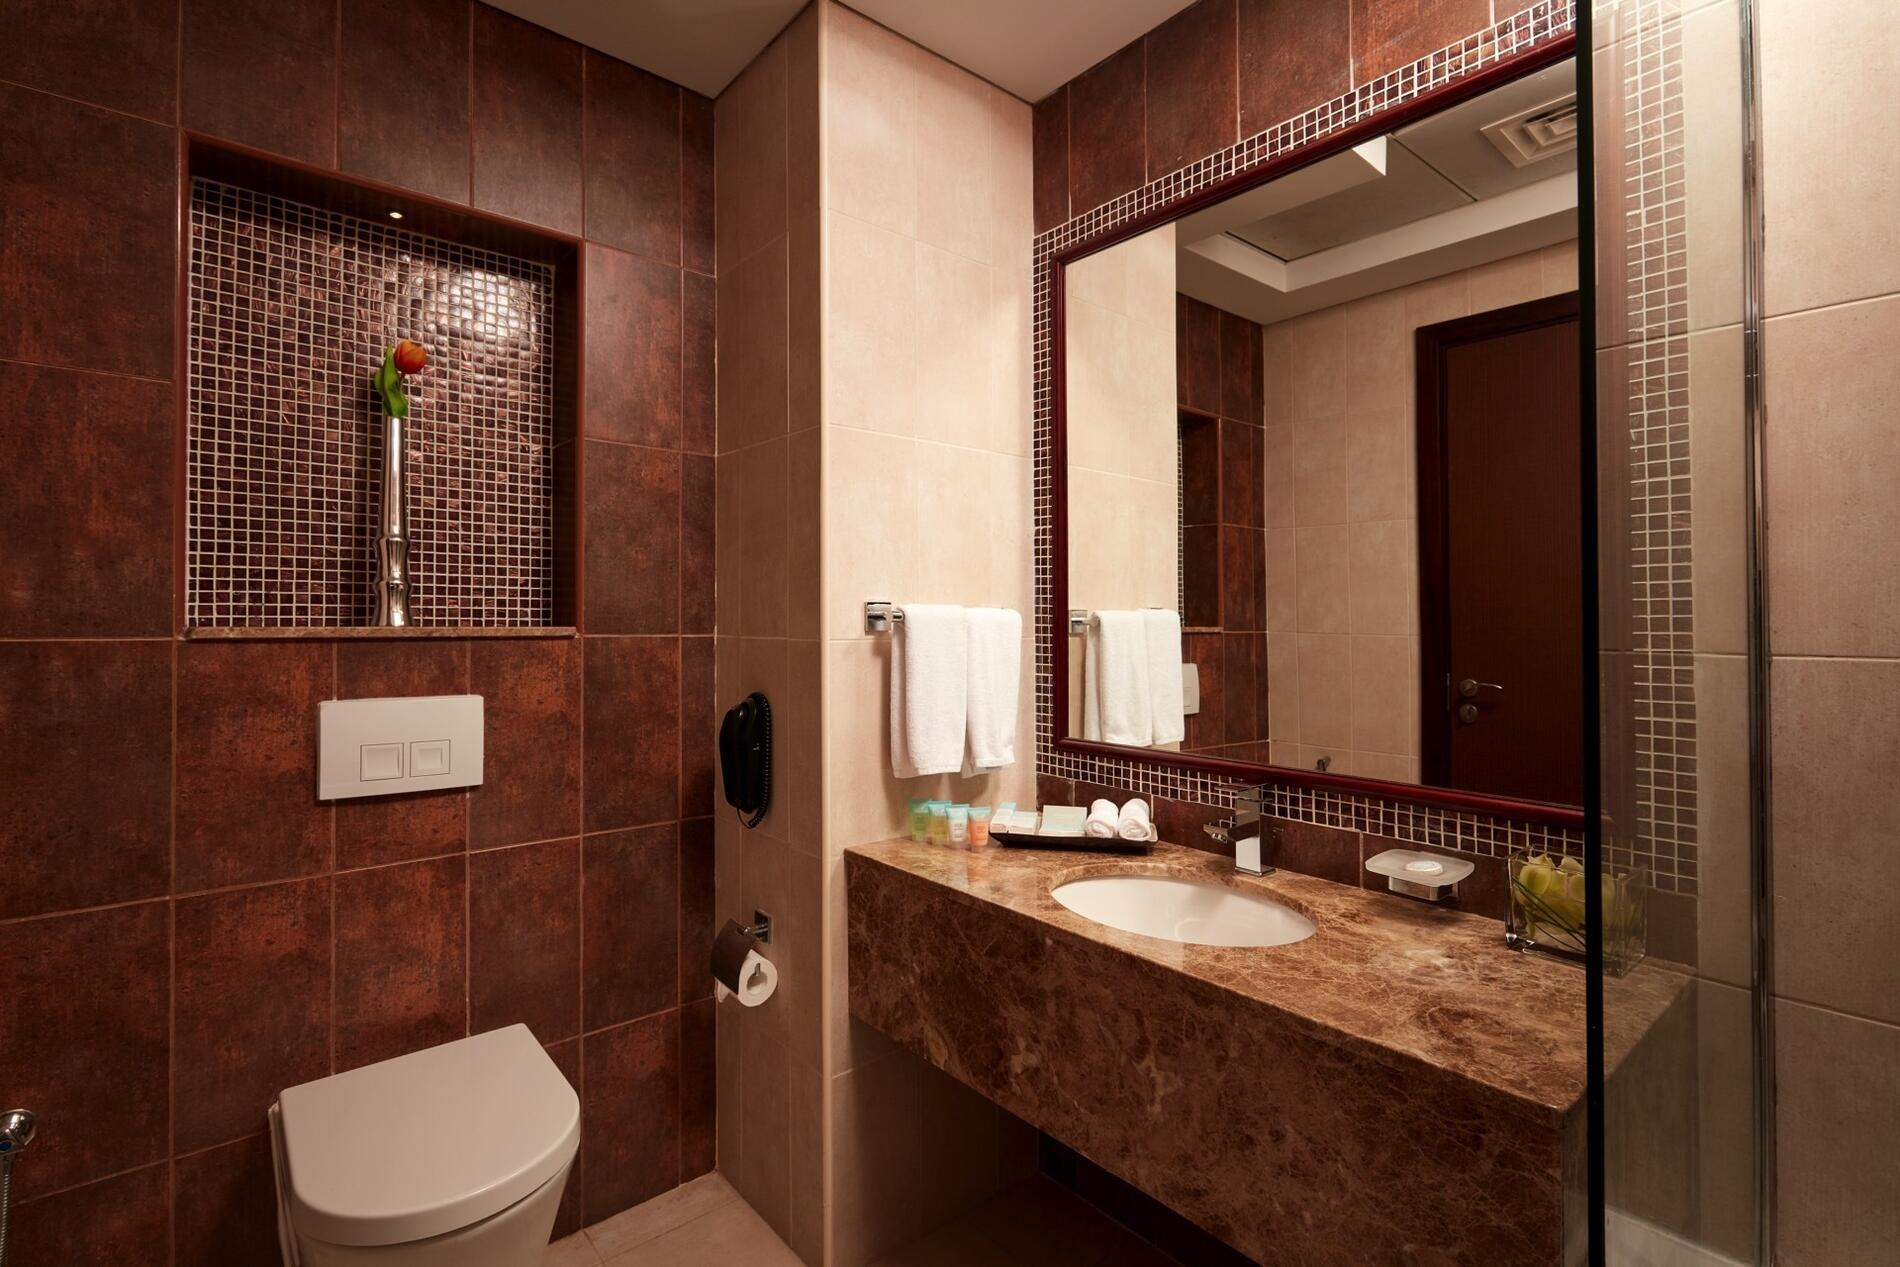 Bathroom at Treppan Hotel and Suites